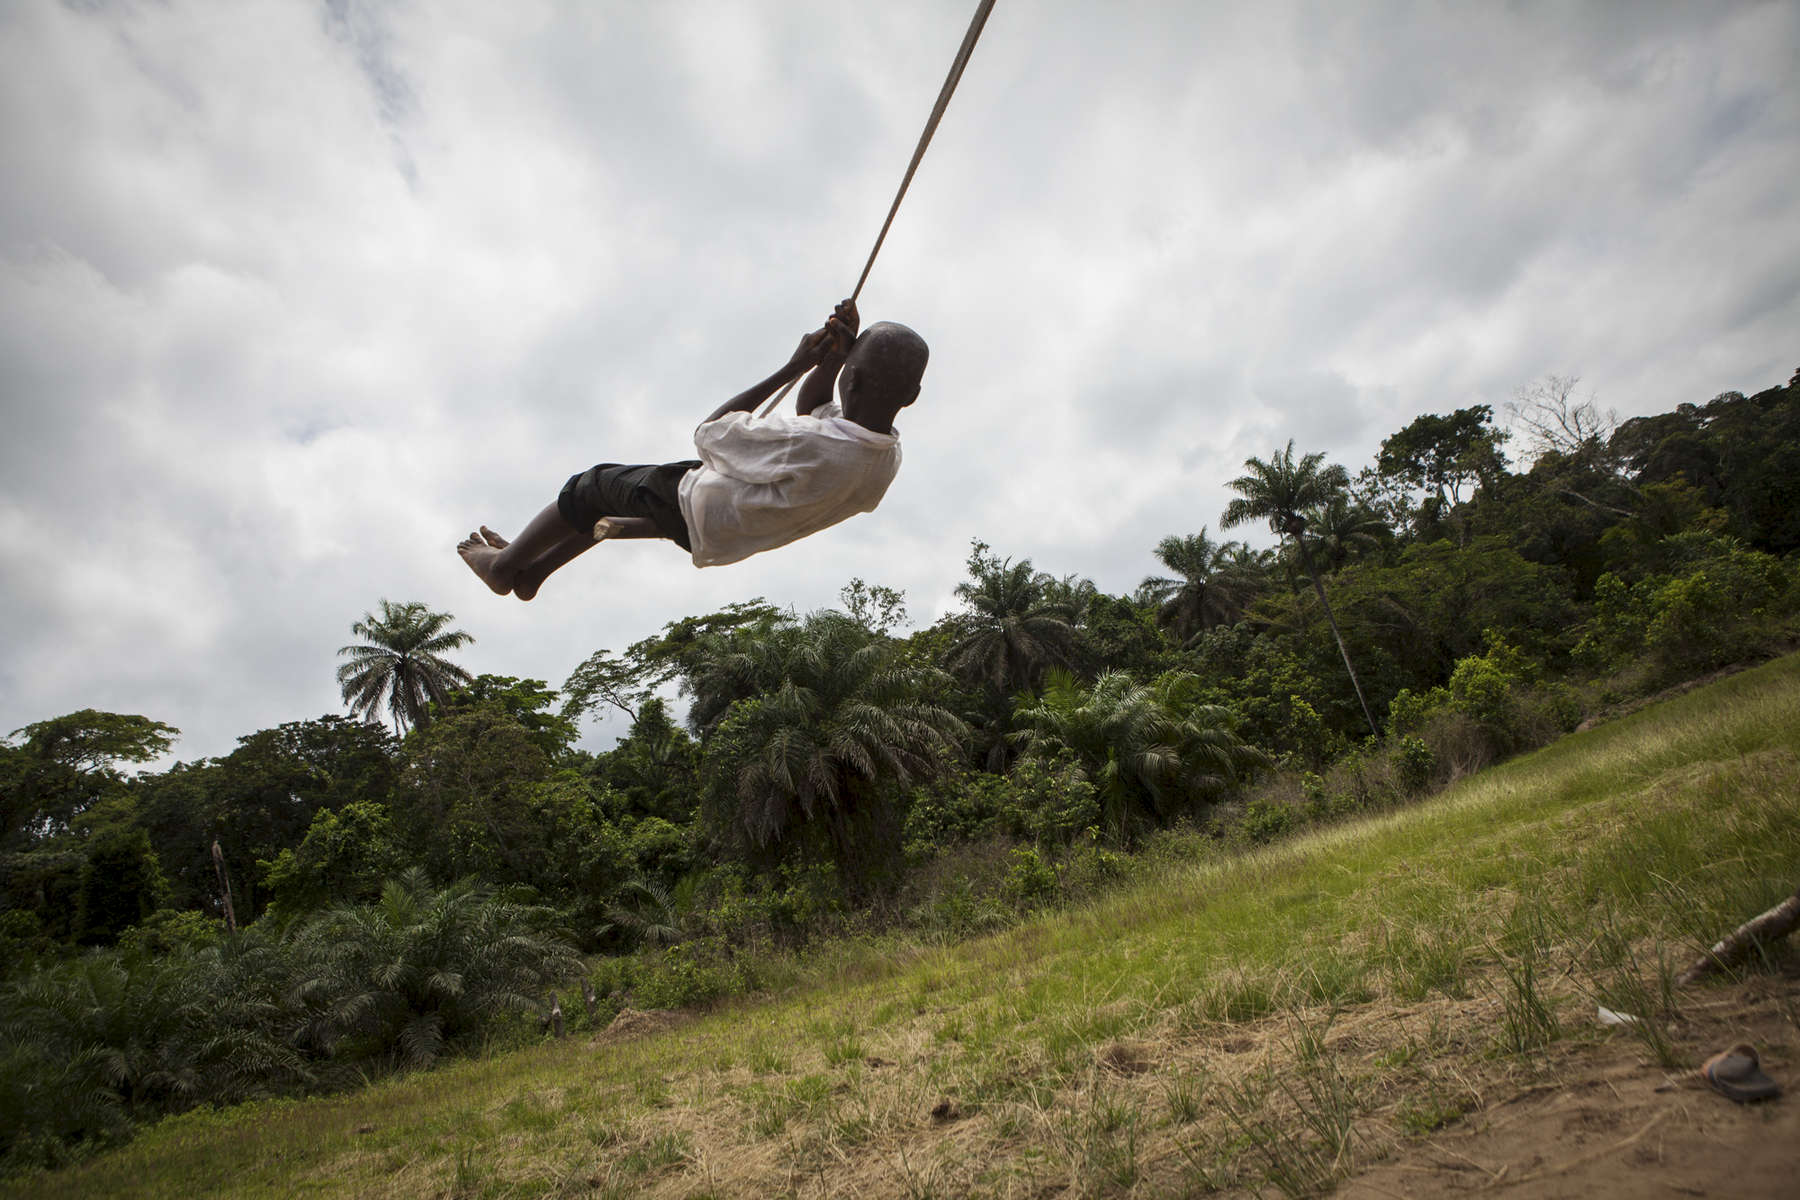 A student plays on the playground at the Passama Public School in Gbarnga, Bong County, Liberia